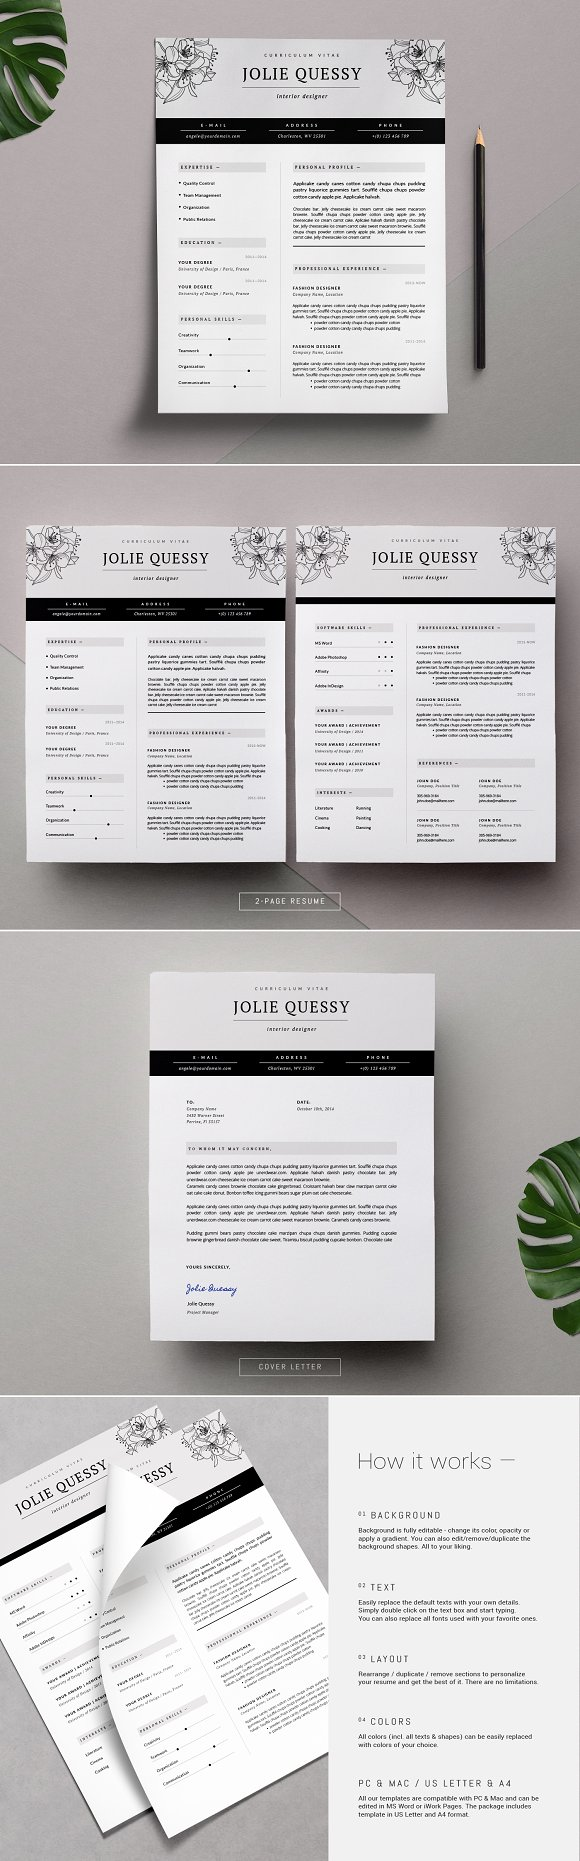 Resume Tutor Excel  Creative Resume Templates You Wont Believe Are Microsoft Word  Cna Duties Resume with Resume Objective For Sales Associate Pdf Feminine Resume Template  Joli Resume For Project Manager Word